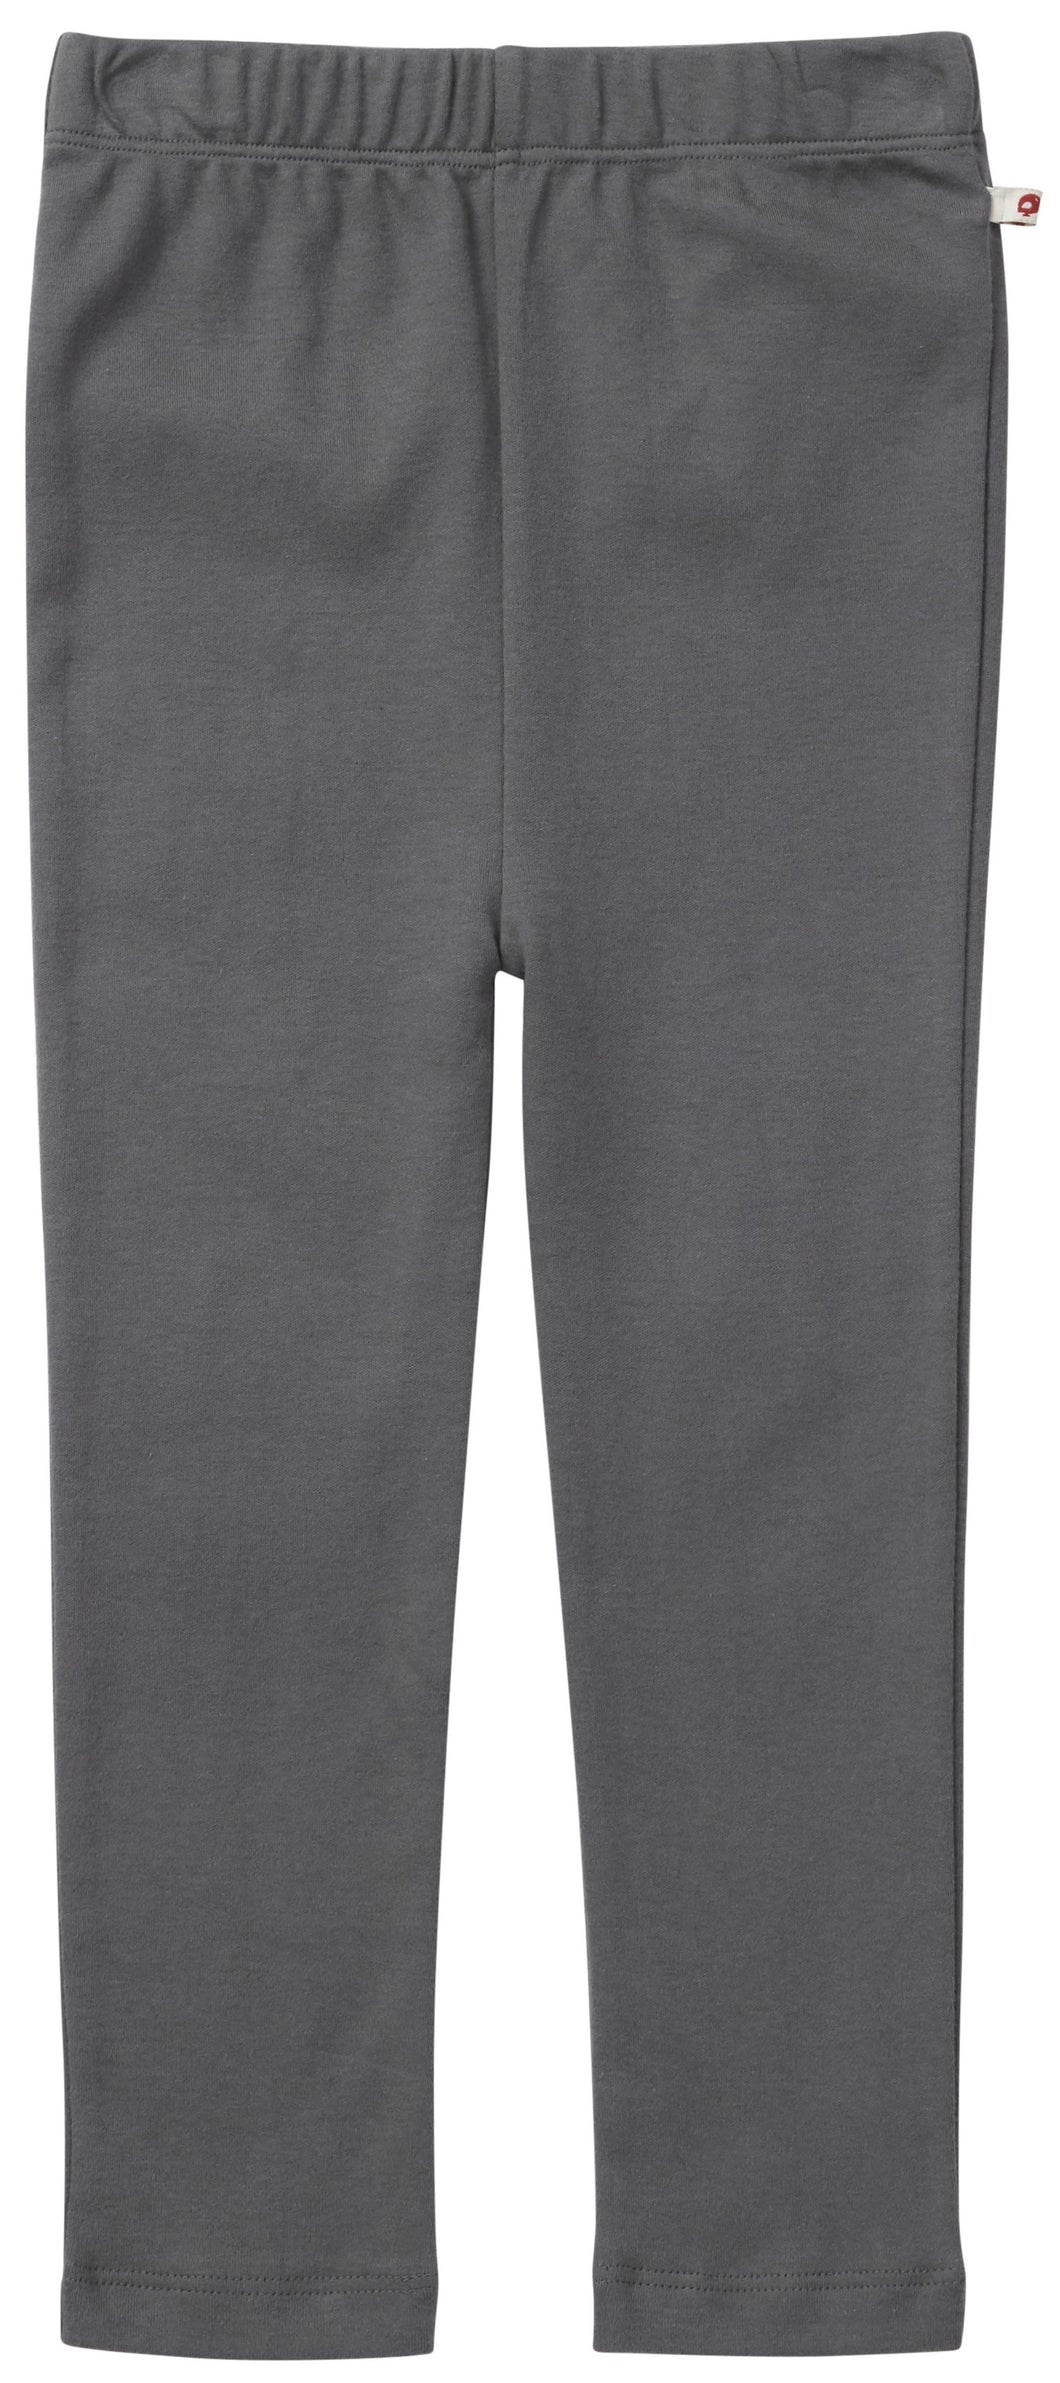 Charcoal Grey Cotton Leggings